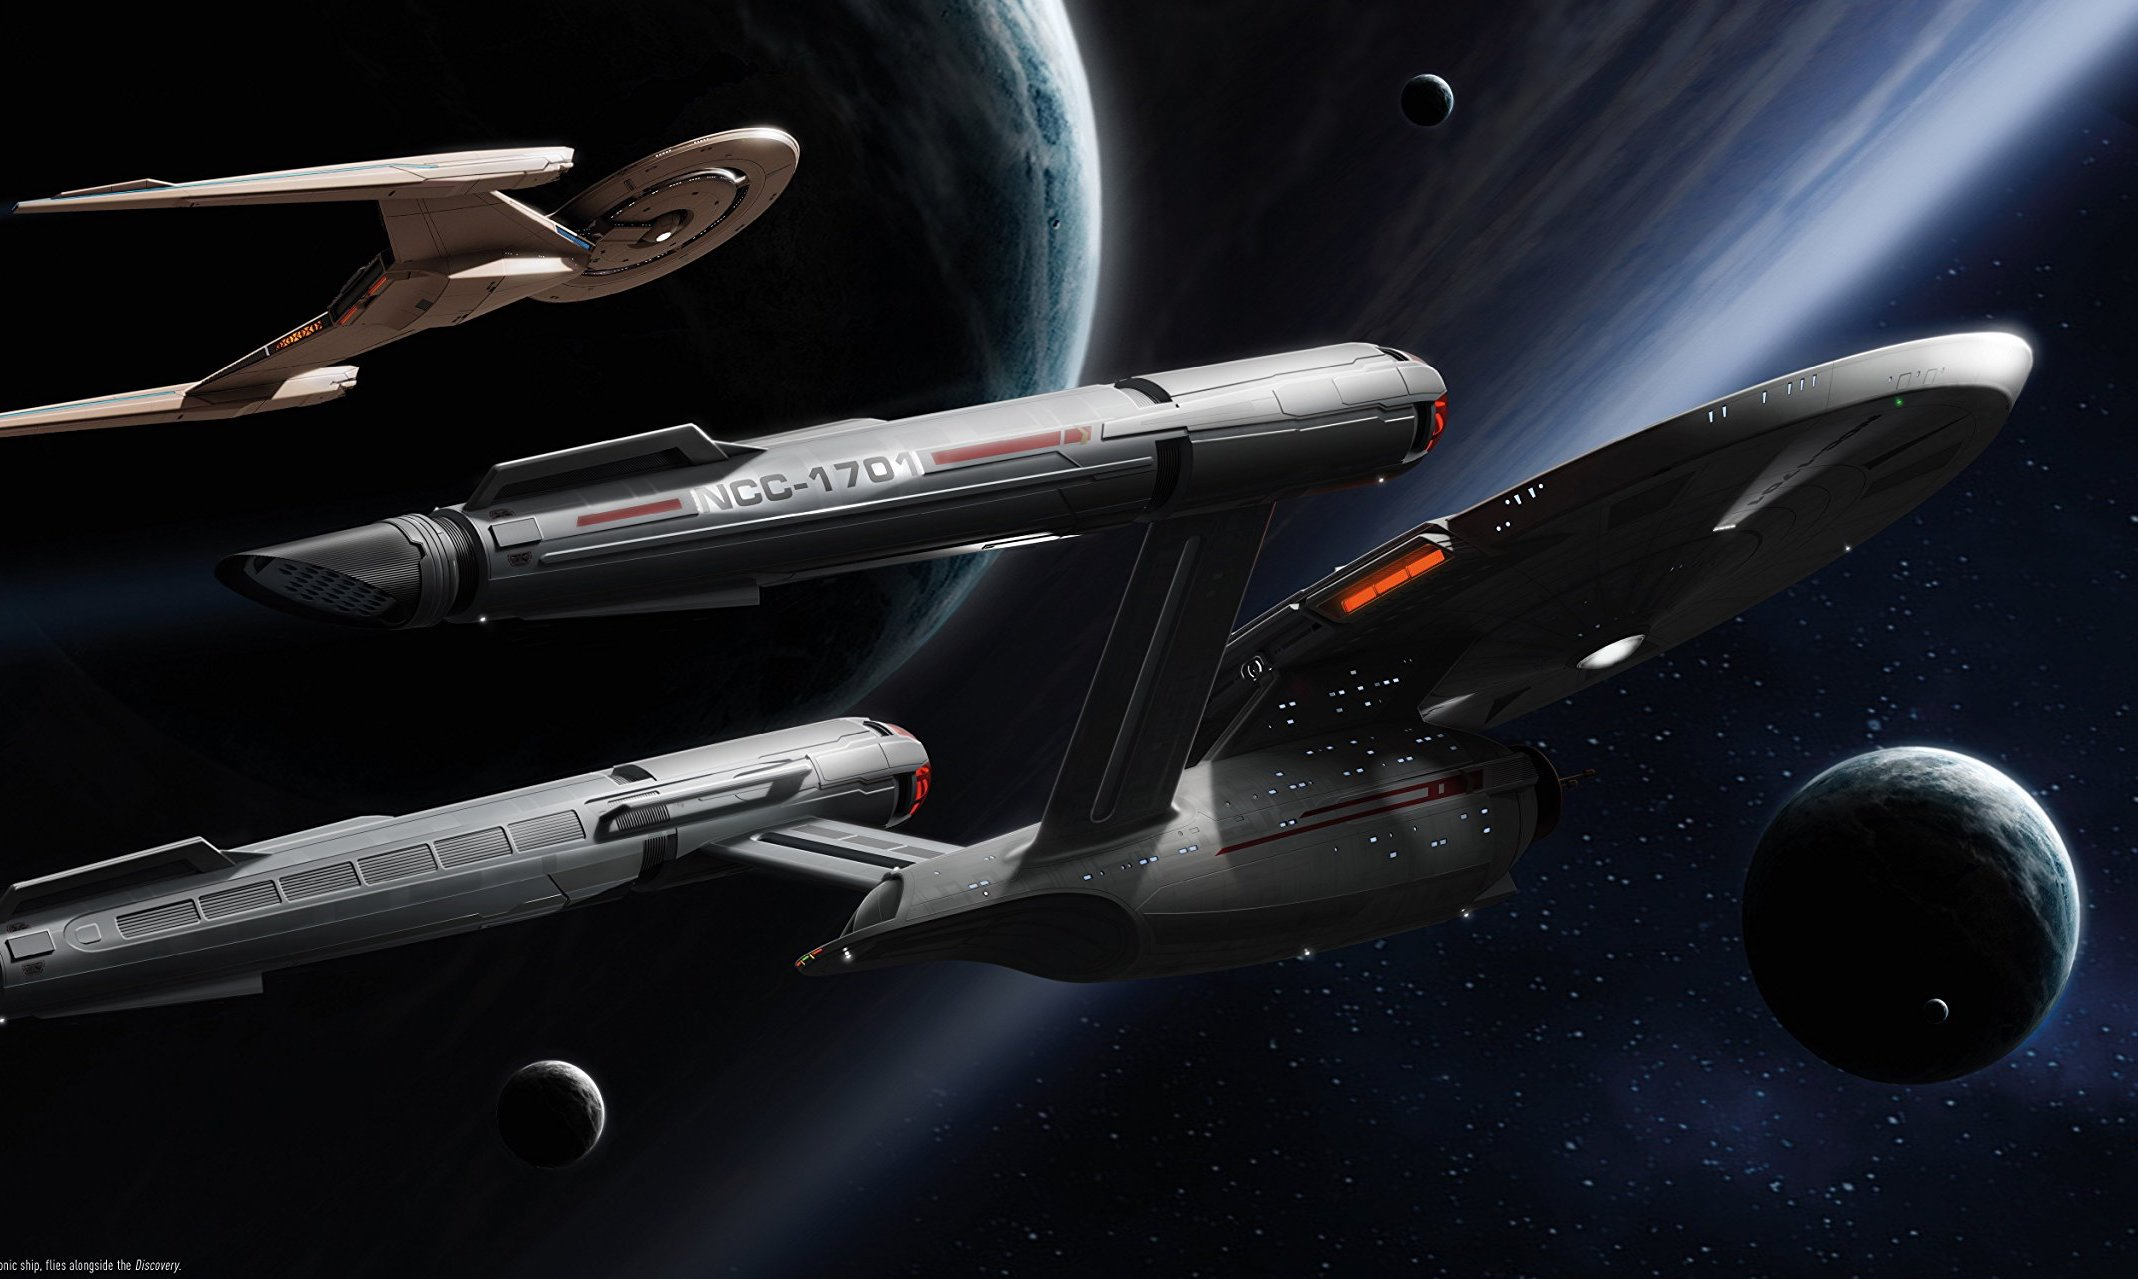 An extensive look at the space ship design from one of the most influential designers in the modern era of 'Star Trek'.